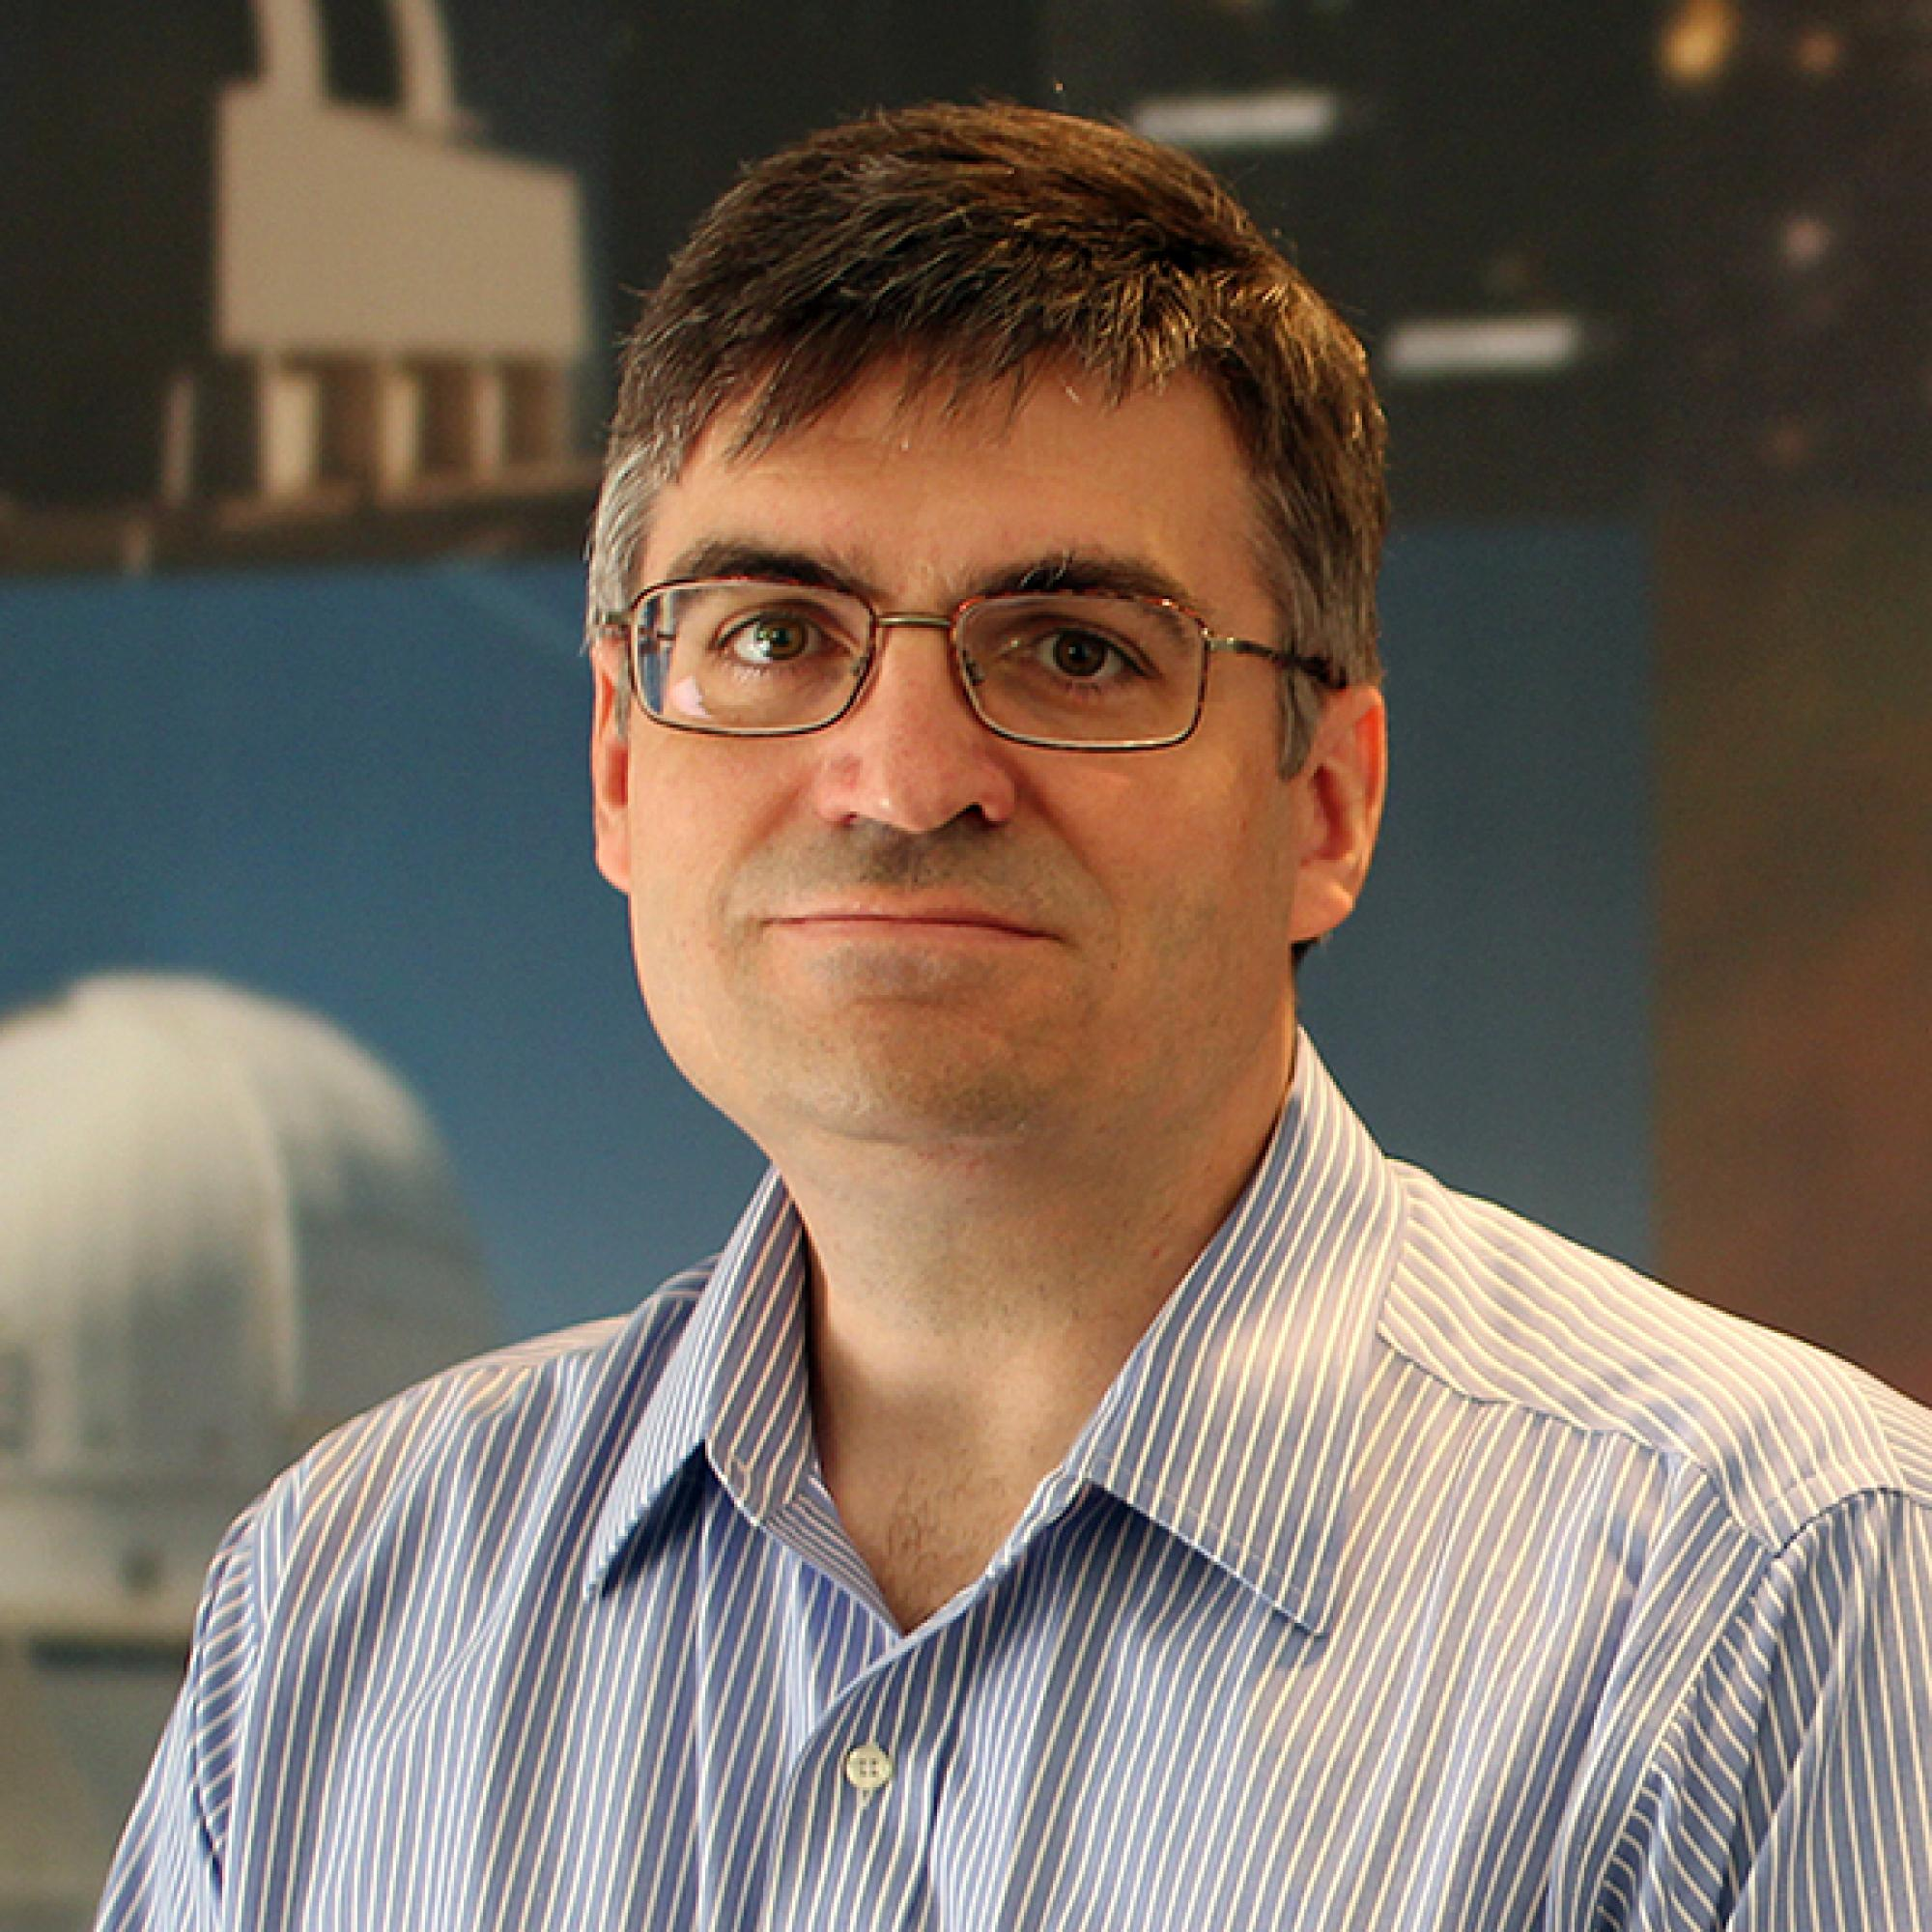 National Optical Astronomy Observatory astronomer Tom Matheson is a member of the UA-NOAO team that will develop the software to process data collected by the Large Synoptic Survey Telescope, which will survey the entire southern sky every three days for